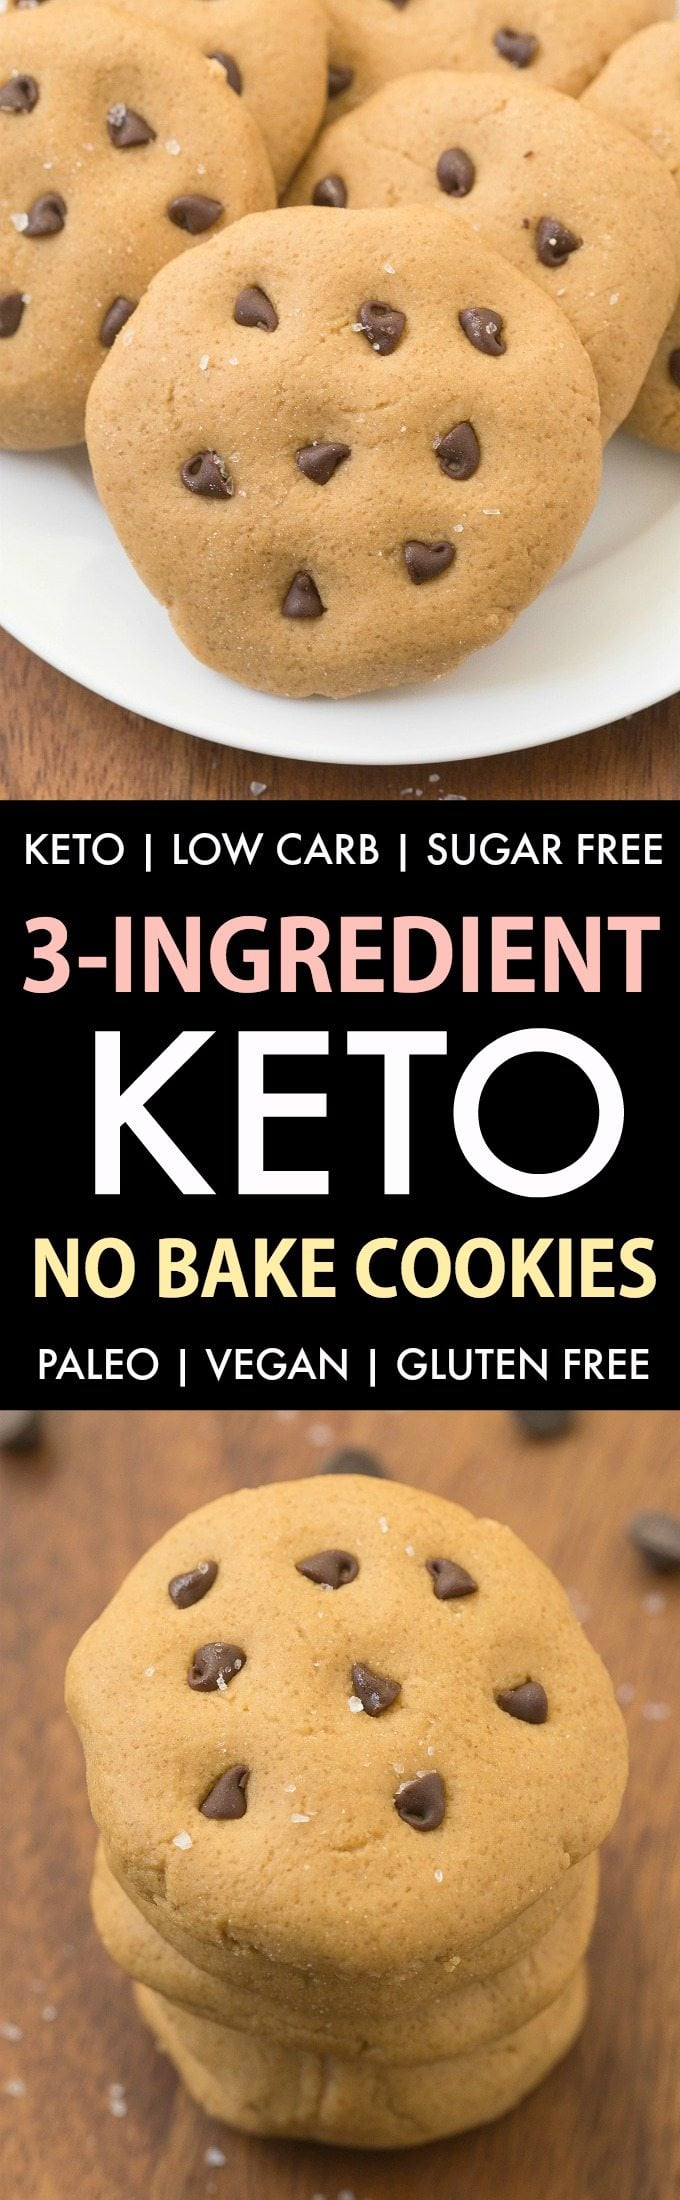 3-Ingredient No Bake Keto Cookies (Paleo, Vegan, Low carb, Sugar Free, Gluten Free)- Easy, healthy and low carb no bake cookies using just 3 ingredients and needing 5 minutes- Soft, chewy and fudgy! #keto #almondbutter #cookies #healthy #nobake | Recipe on thebigmansworld.com